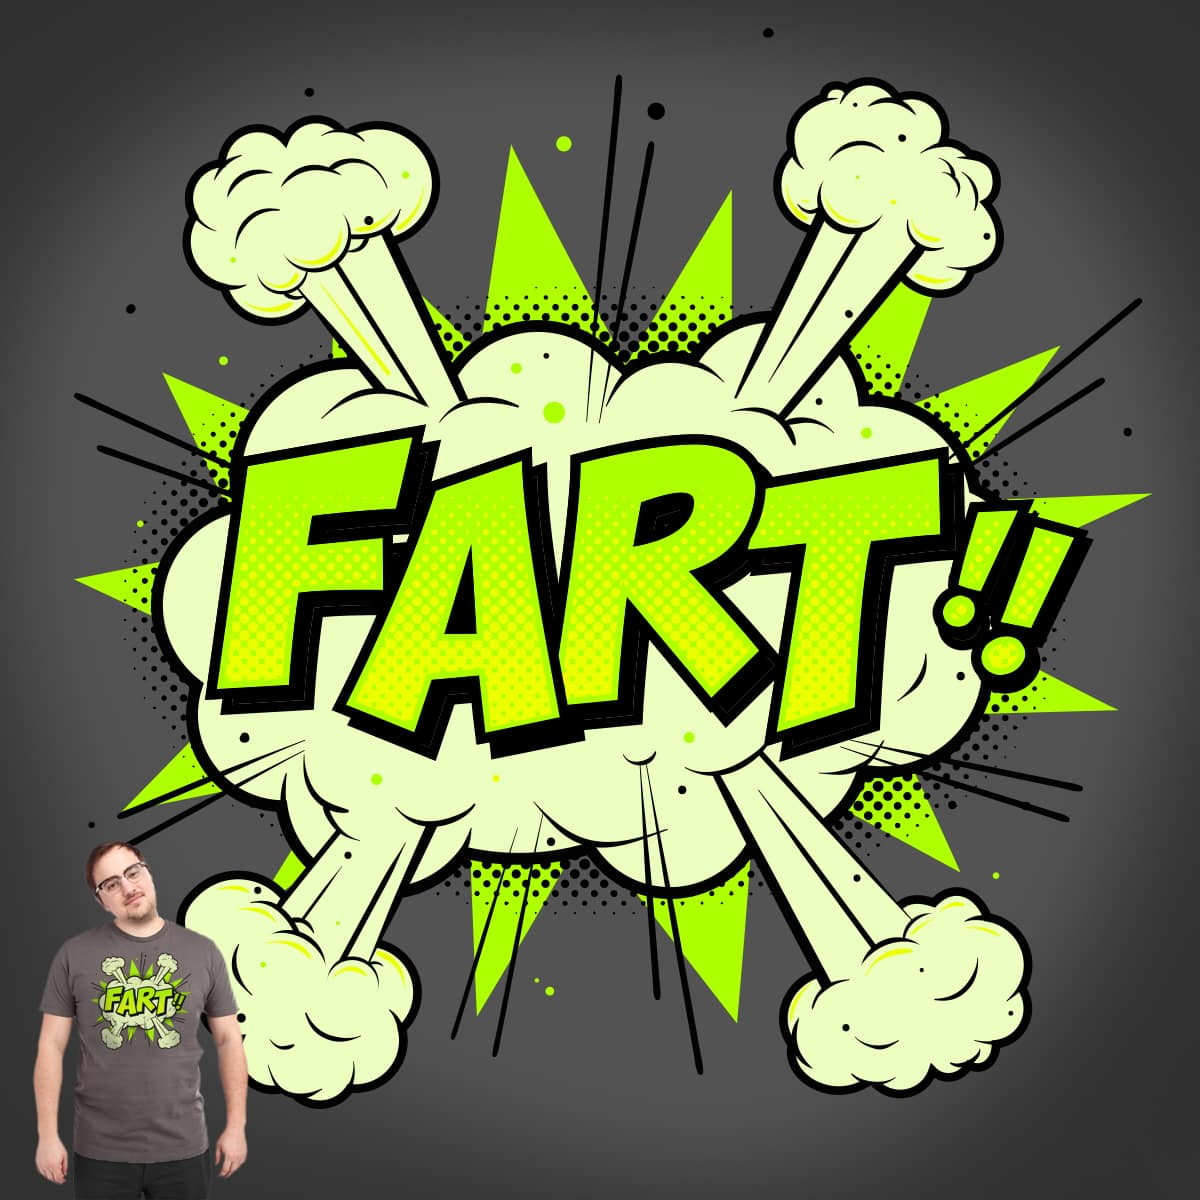 FART!! by everything on Threadless